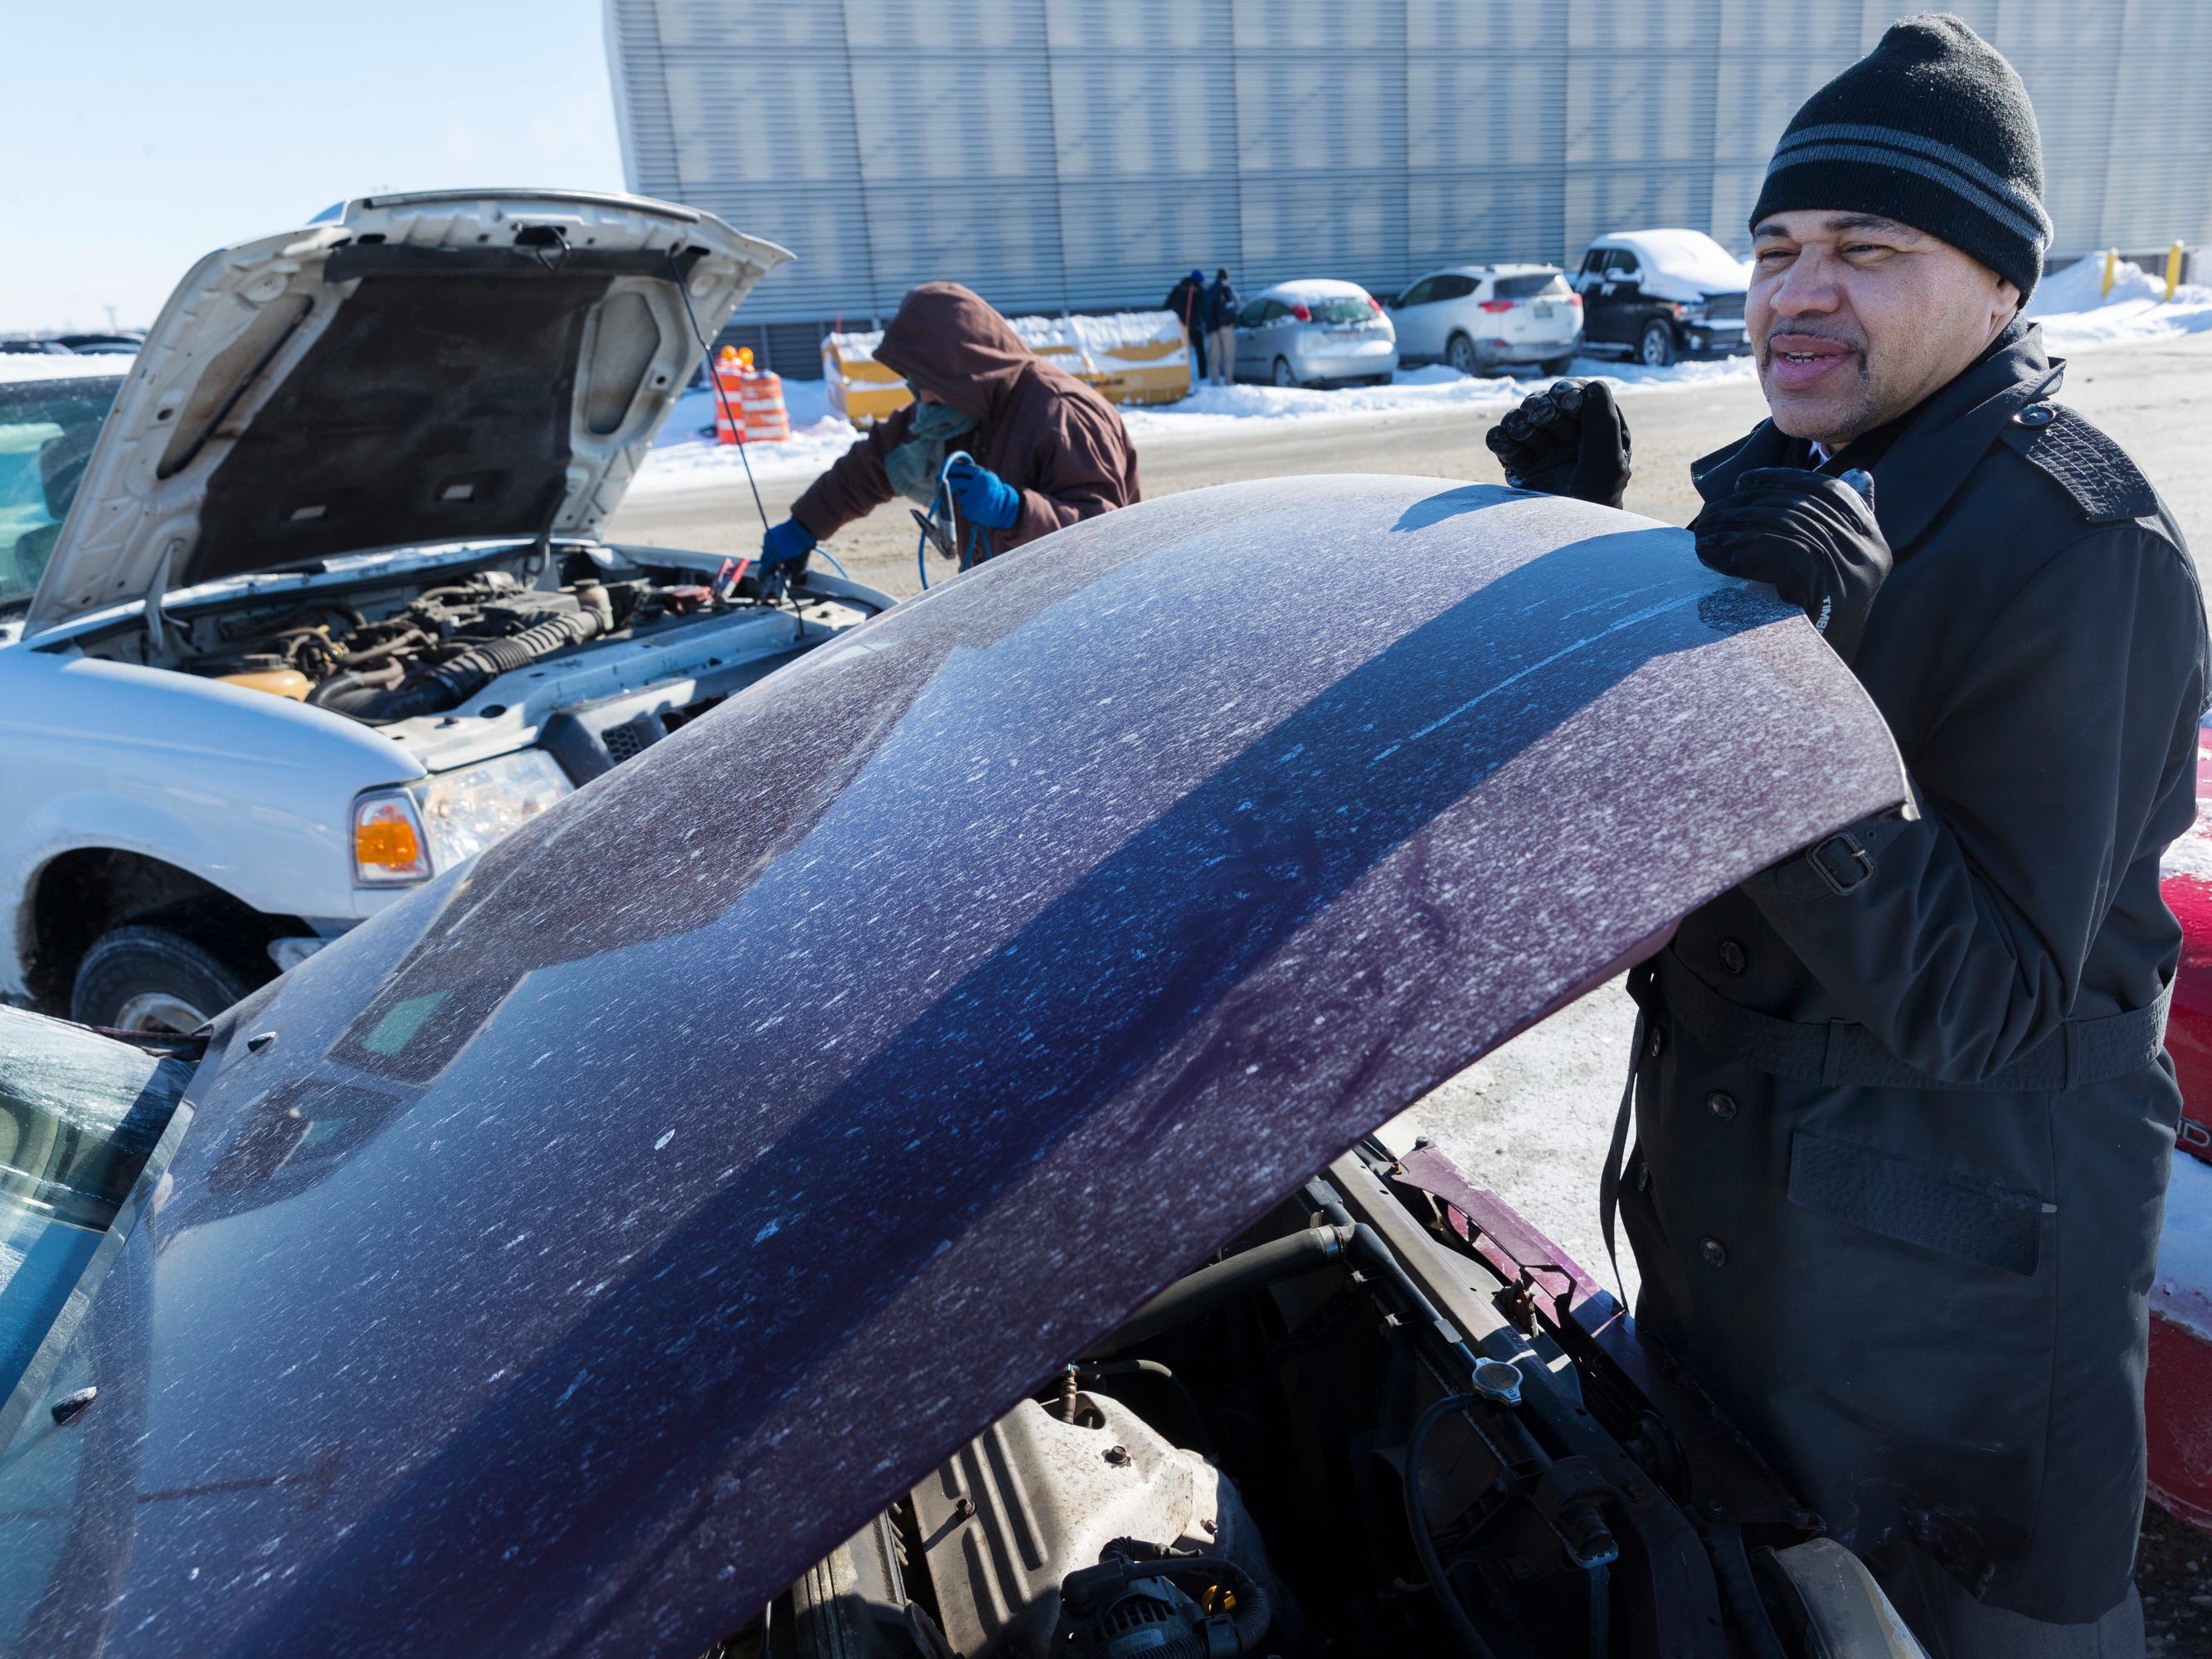 Delta Airlines employee Charles Moreno (foreground) helps Interflight Parking employee Jose Marrero jump-start his car at Mitchell International Airport in Milwaukee.